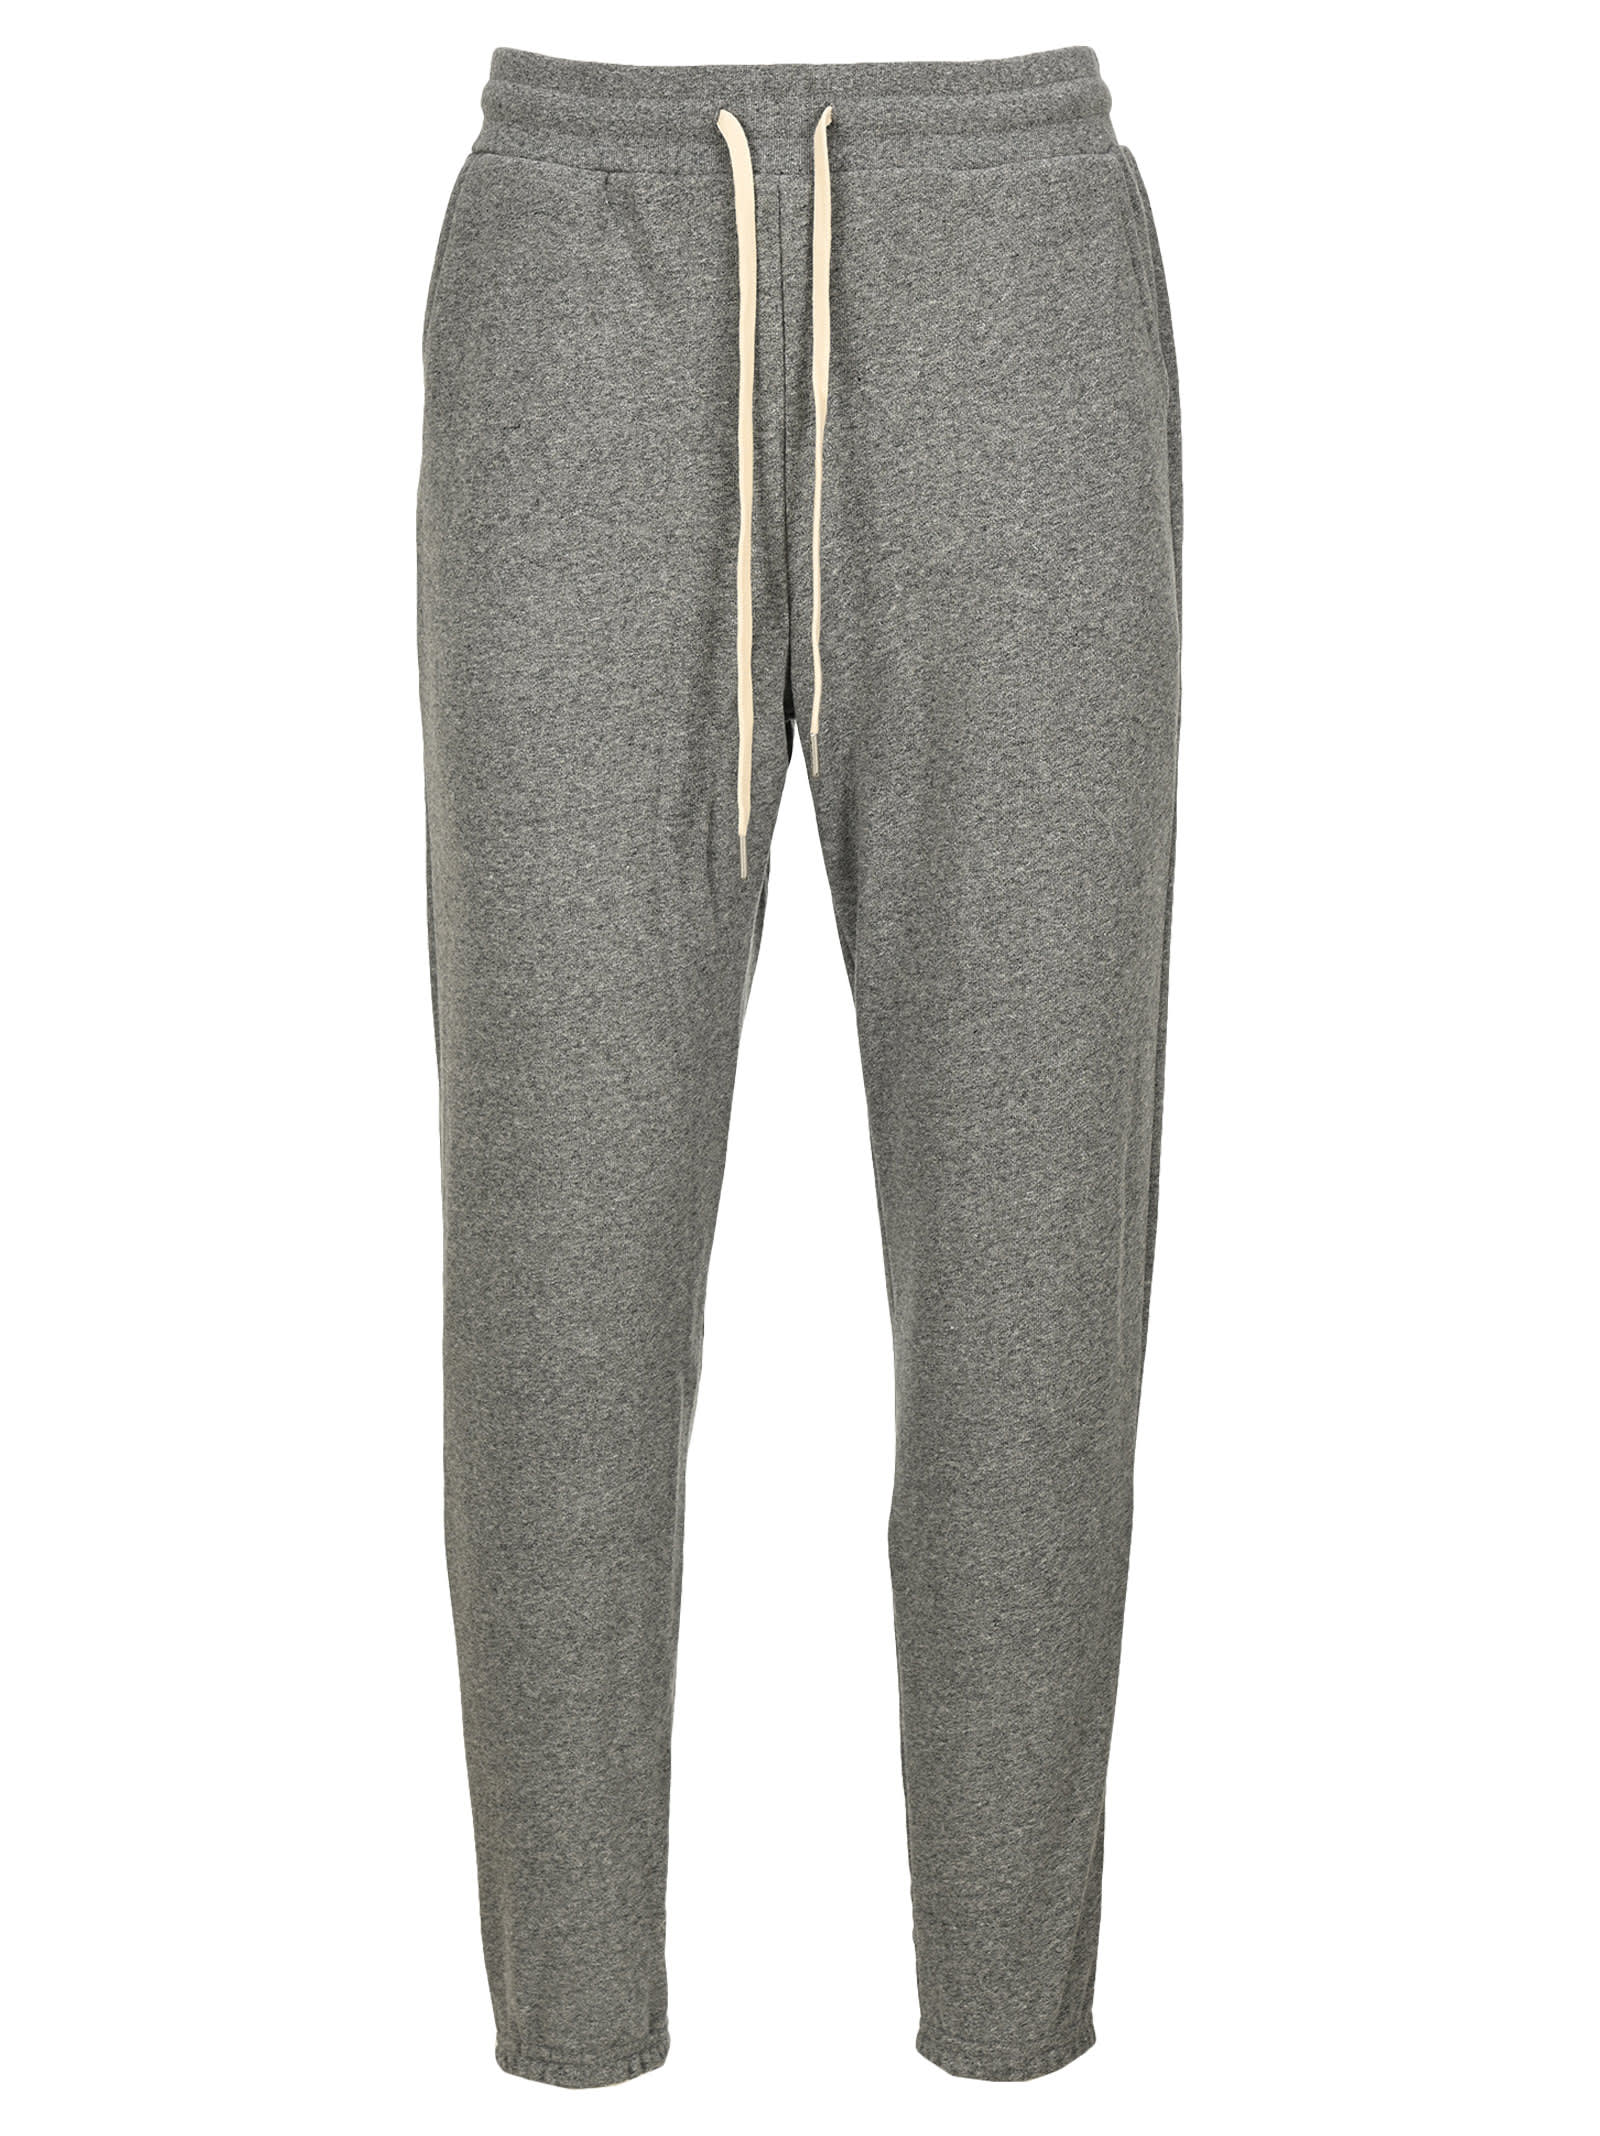 John Elliott La Sweatpants